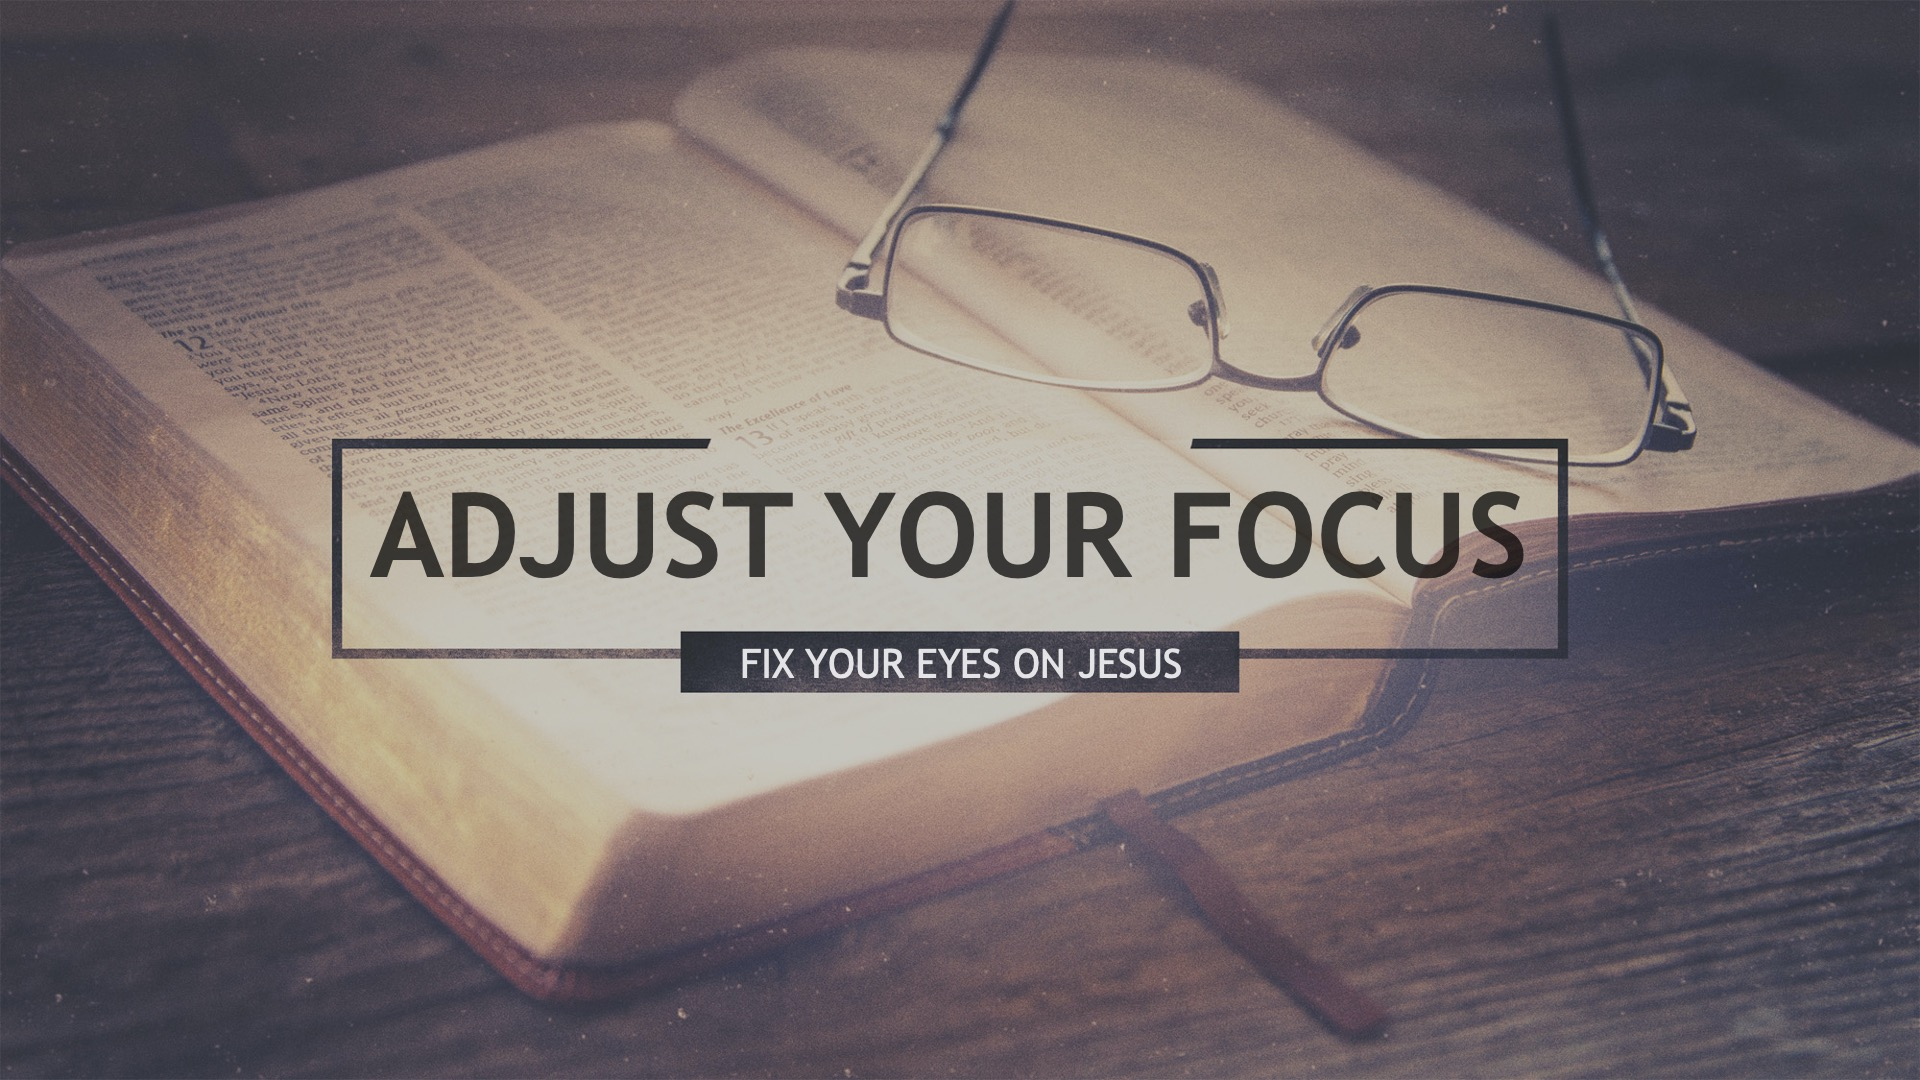 Adjust Your Focus Fix Your Eyes on Jesus